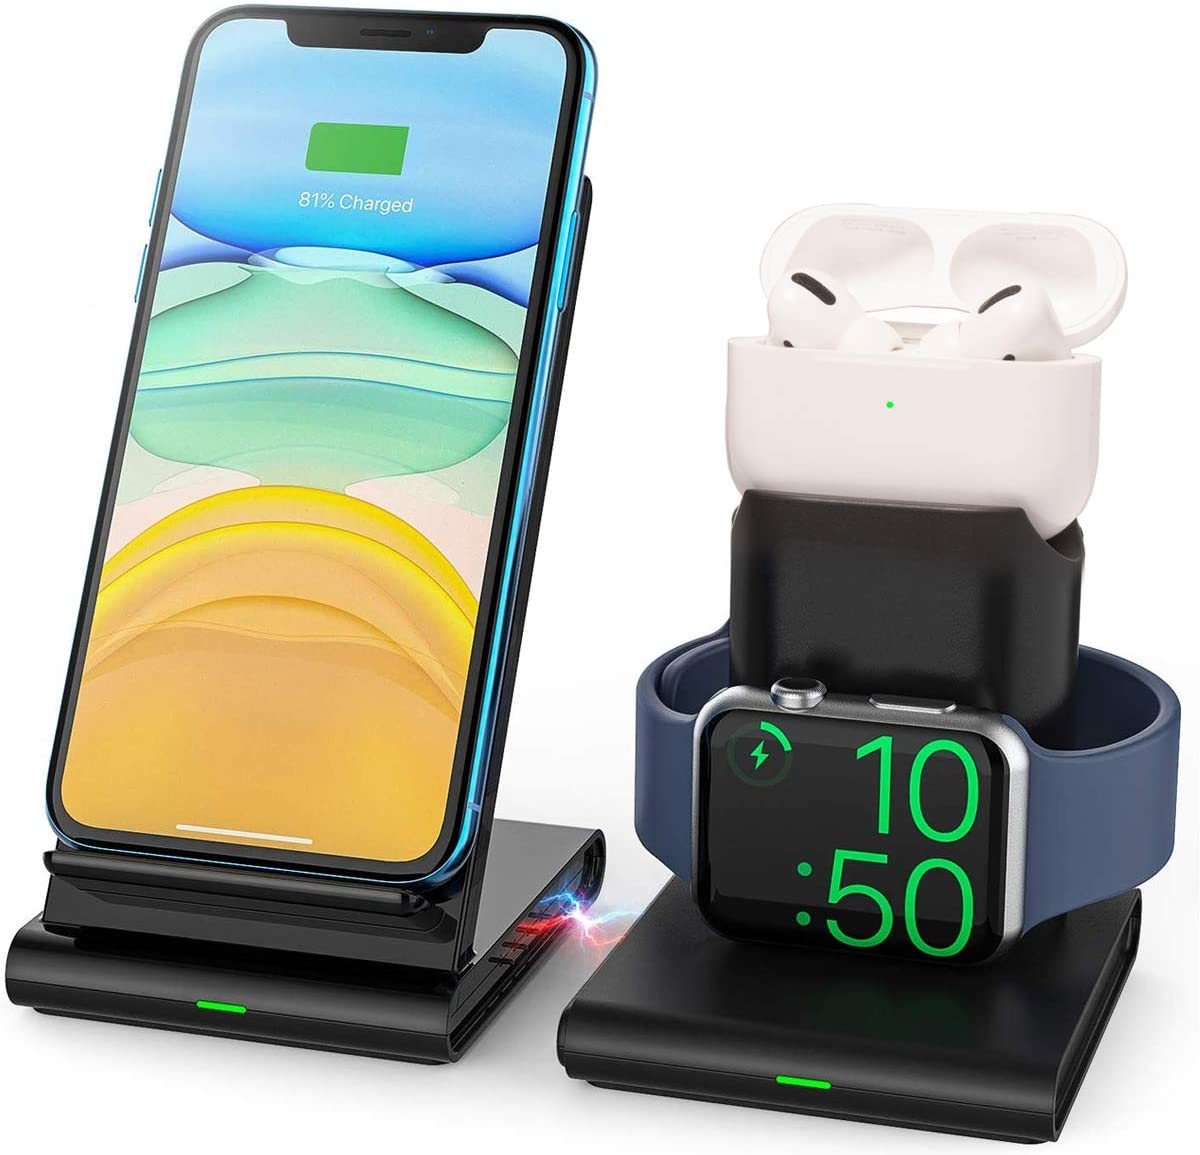 Detachable Wireless Charger,3 in 1 Wireless Charging Stand for Apple Watch/Airpods Pro, Wireless Charger Station Compatible with iPhone 11 Pro Max/X/XS/XR/8Plus